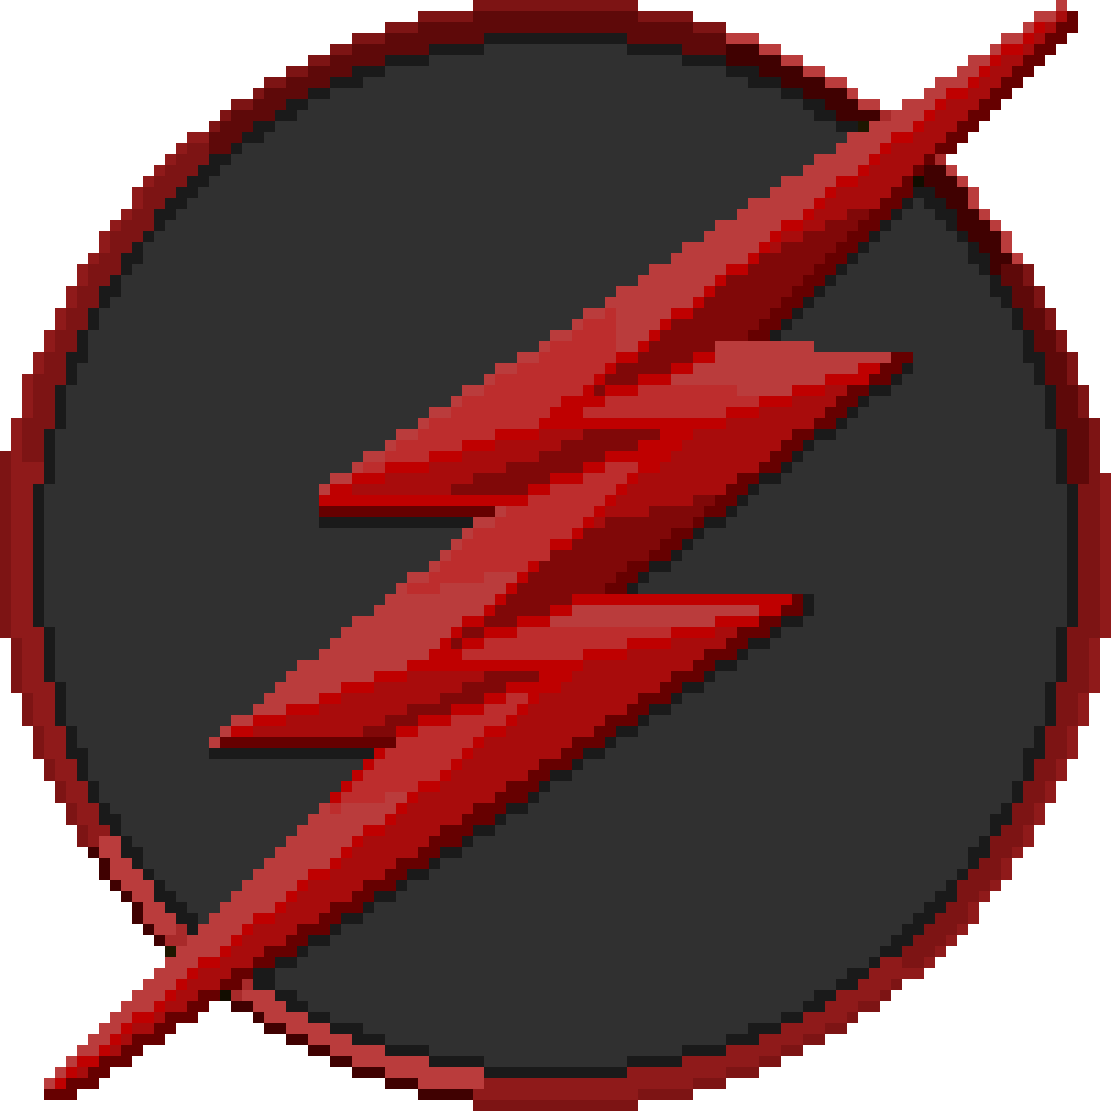 Pixilart The Reverse Flash Symbol By Agard80 Bit We have 66+ amazing background pictures carefully picked by our community. the reverse flash symbol by agard80 bit